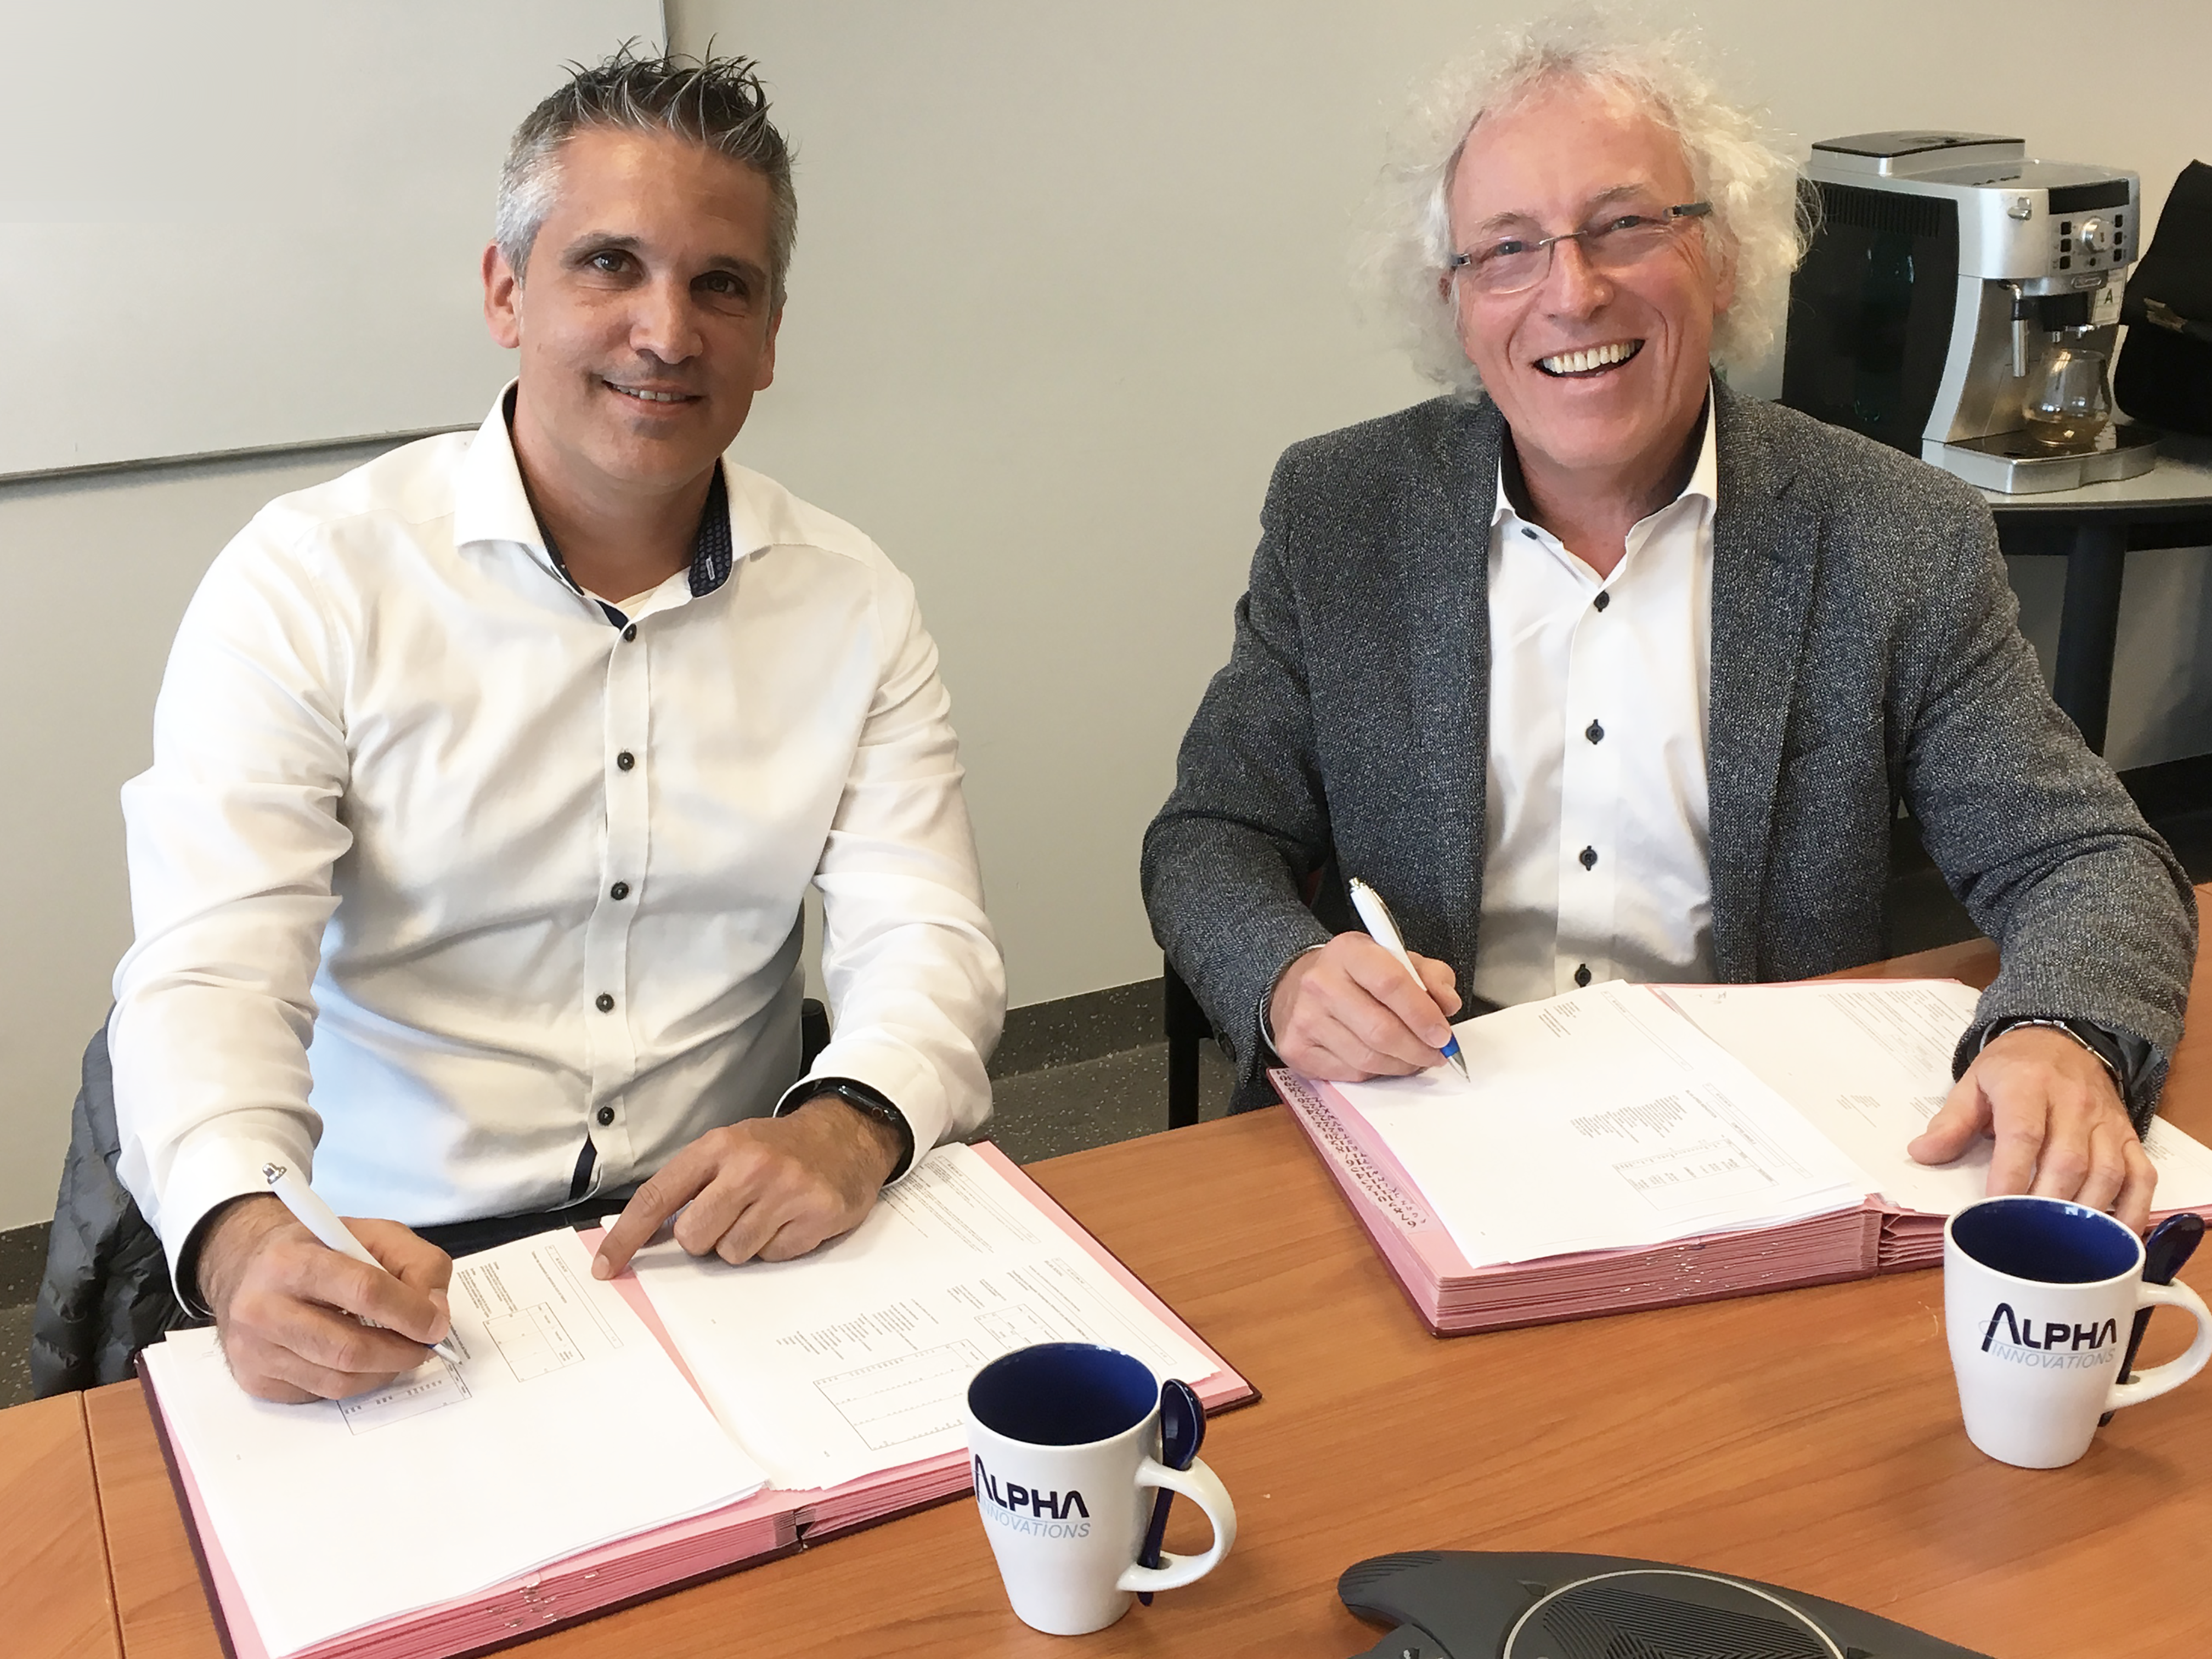 Alberto Méndez Rodriguez, President of the Board of Alpha Innovations and Robert Eyben, CEO of CE+T holding